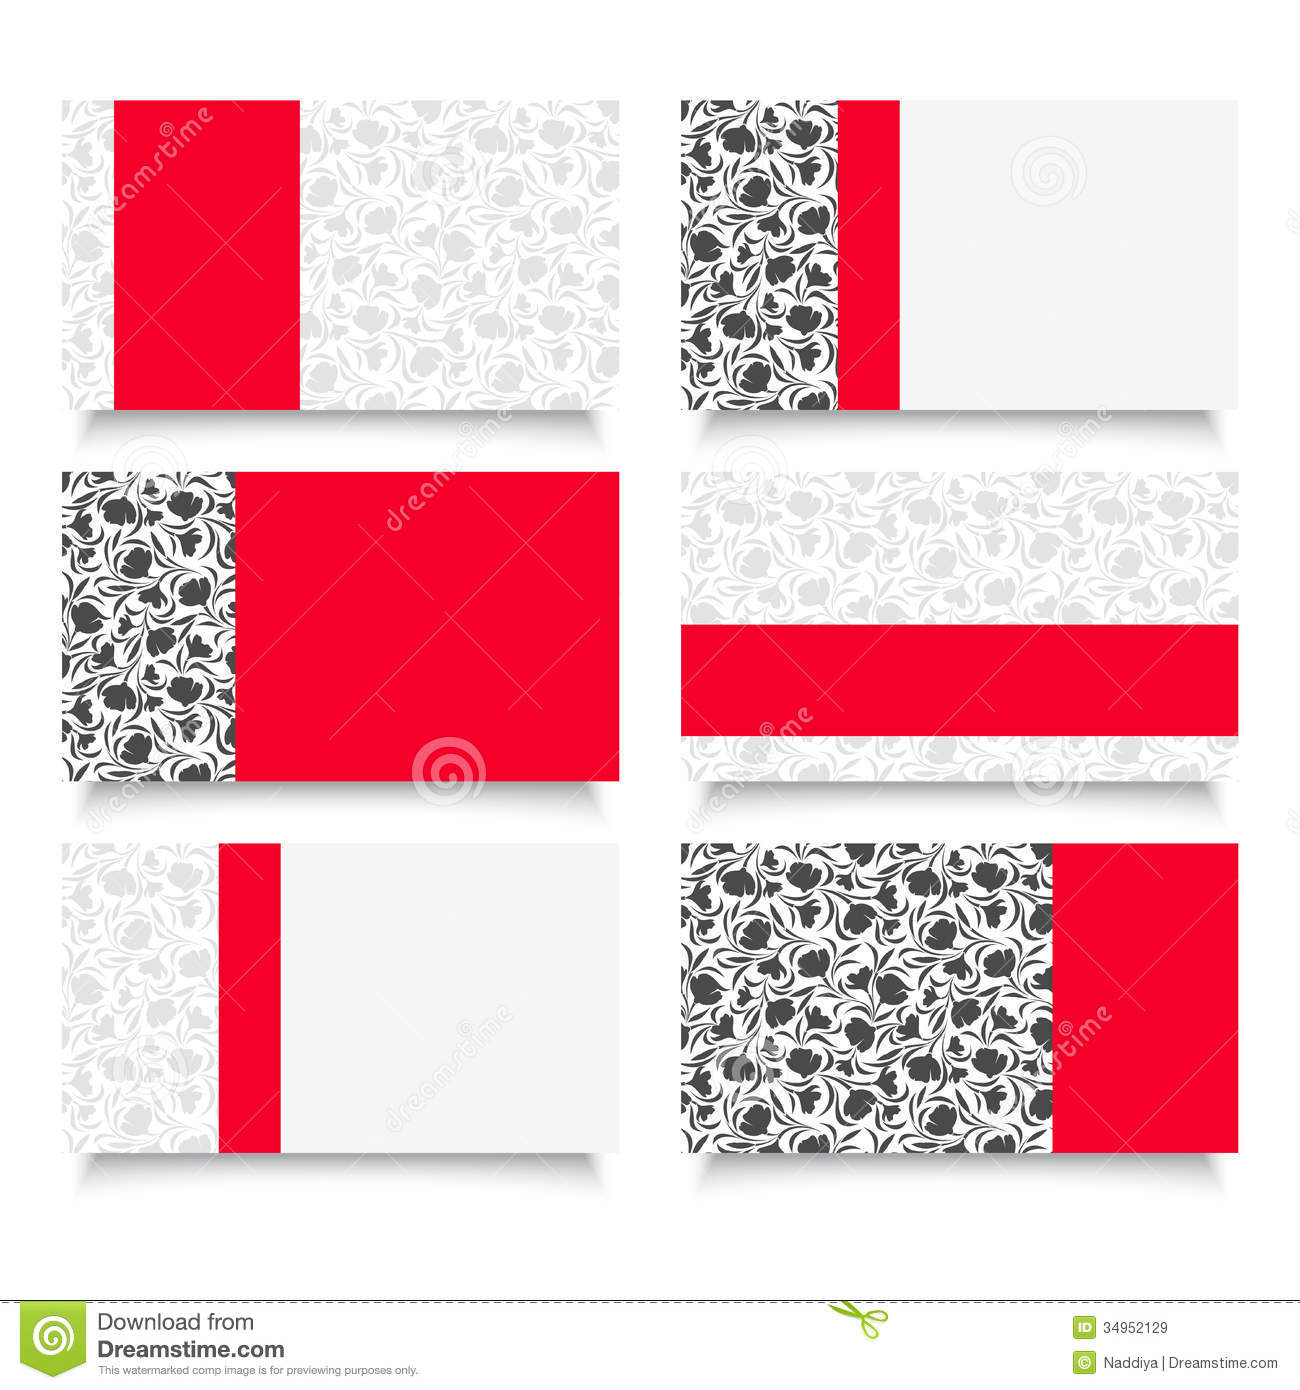 Six Modern Business Cards With Floral Patterns. Stock Vector ...